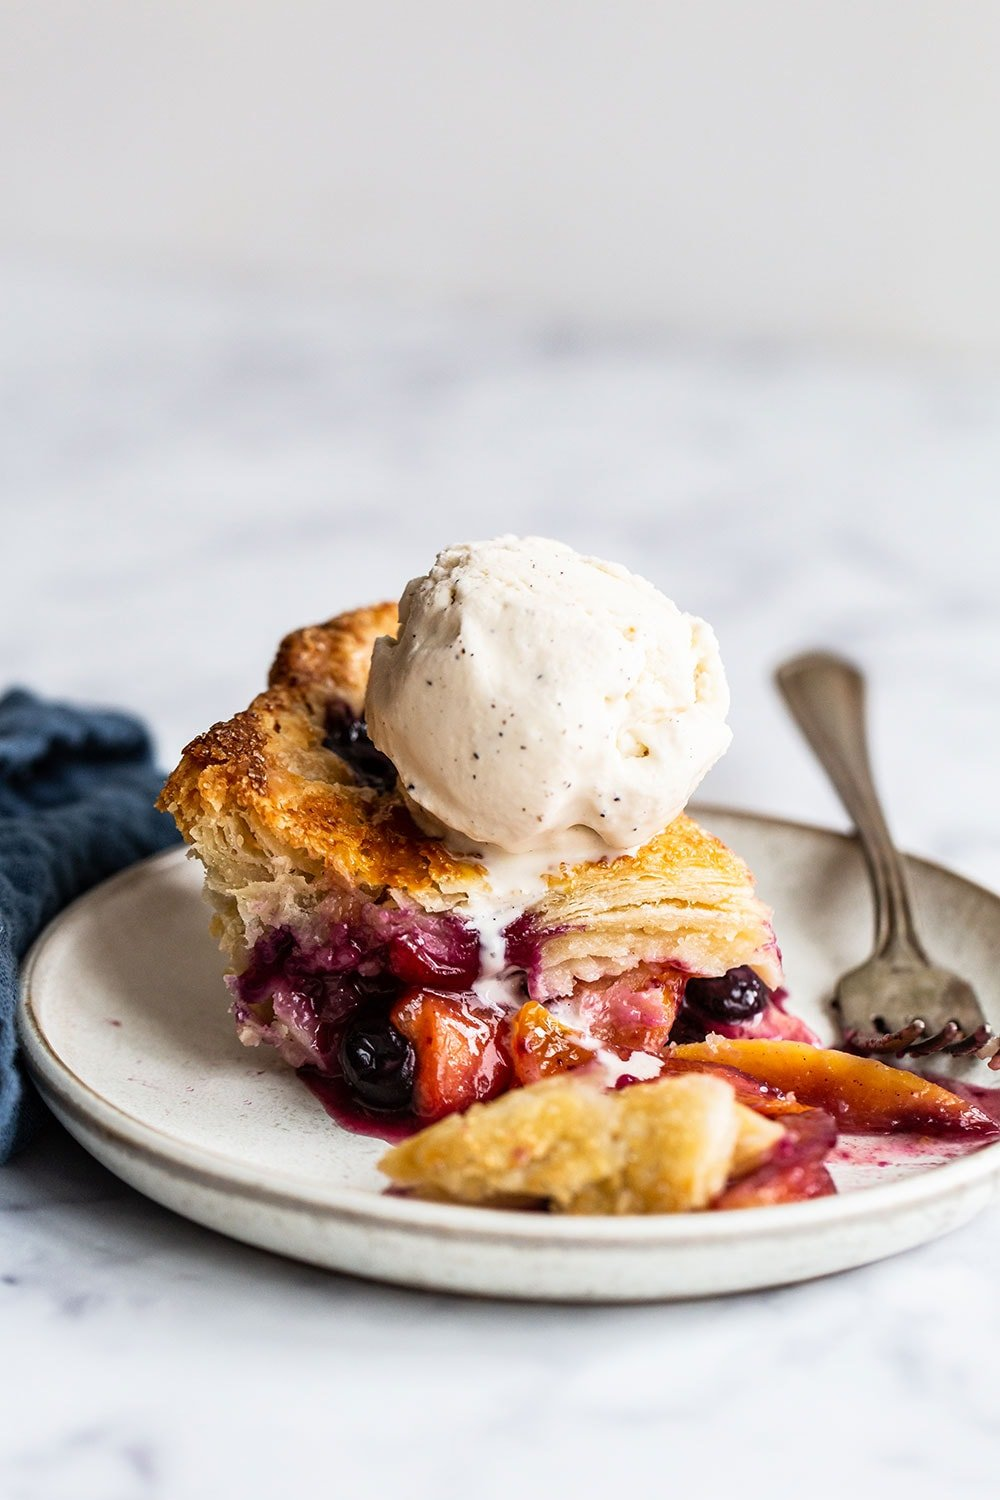 slice of blueberry peach pie with scoop of vanilla ice cream on top